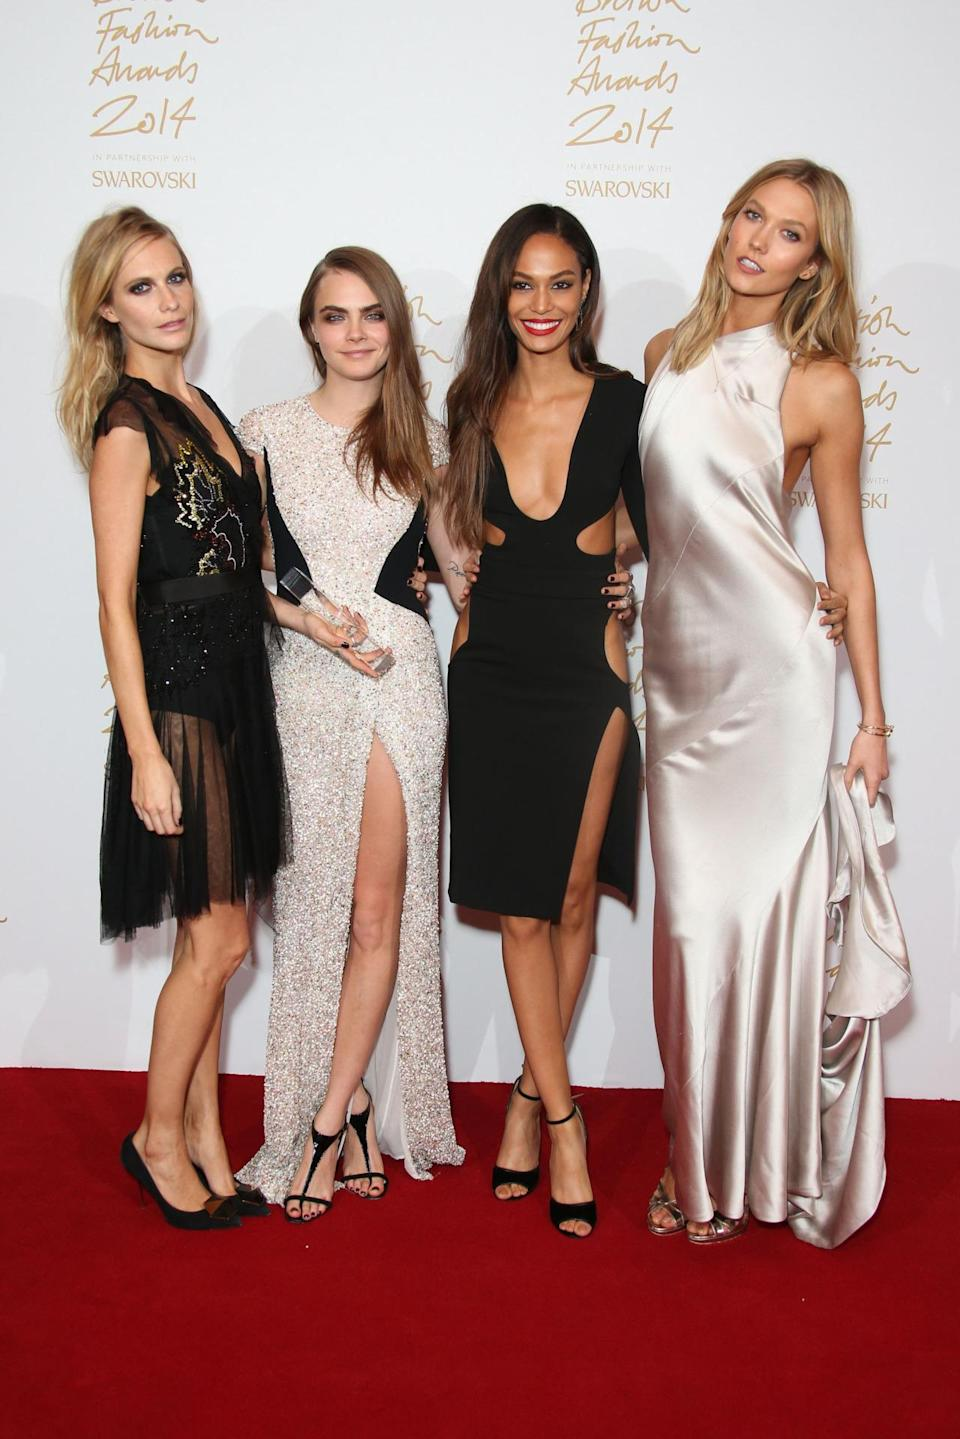 """Cara Delevingne won model of the year, wearing a ground-sweeping dress with a major thigh slit — she even revealed that she feared flashing her private parts to the paparazzi it was so high. The two-time champ was presented the award by a very special trio — her sister, Poppy Delevingne in Topshop, and friends Joan Smalls and Karlie Kloss — and her work this year proves that not only is she the queen of the British fashion scene, but the world's as well. When asked to name the instant in 2014 that stands out the most, she said: """"How dare you make me pick one moment!"""" Asked how proud she is to be British, the sexy Brit responded that she's """"ever longingly"""" and """"unconditionally"""" proud, and that's one of the reasons why she got the tattoo """"Made in England"""" on the bottom of her foot."""